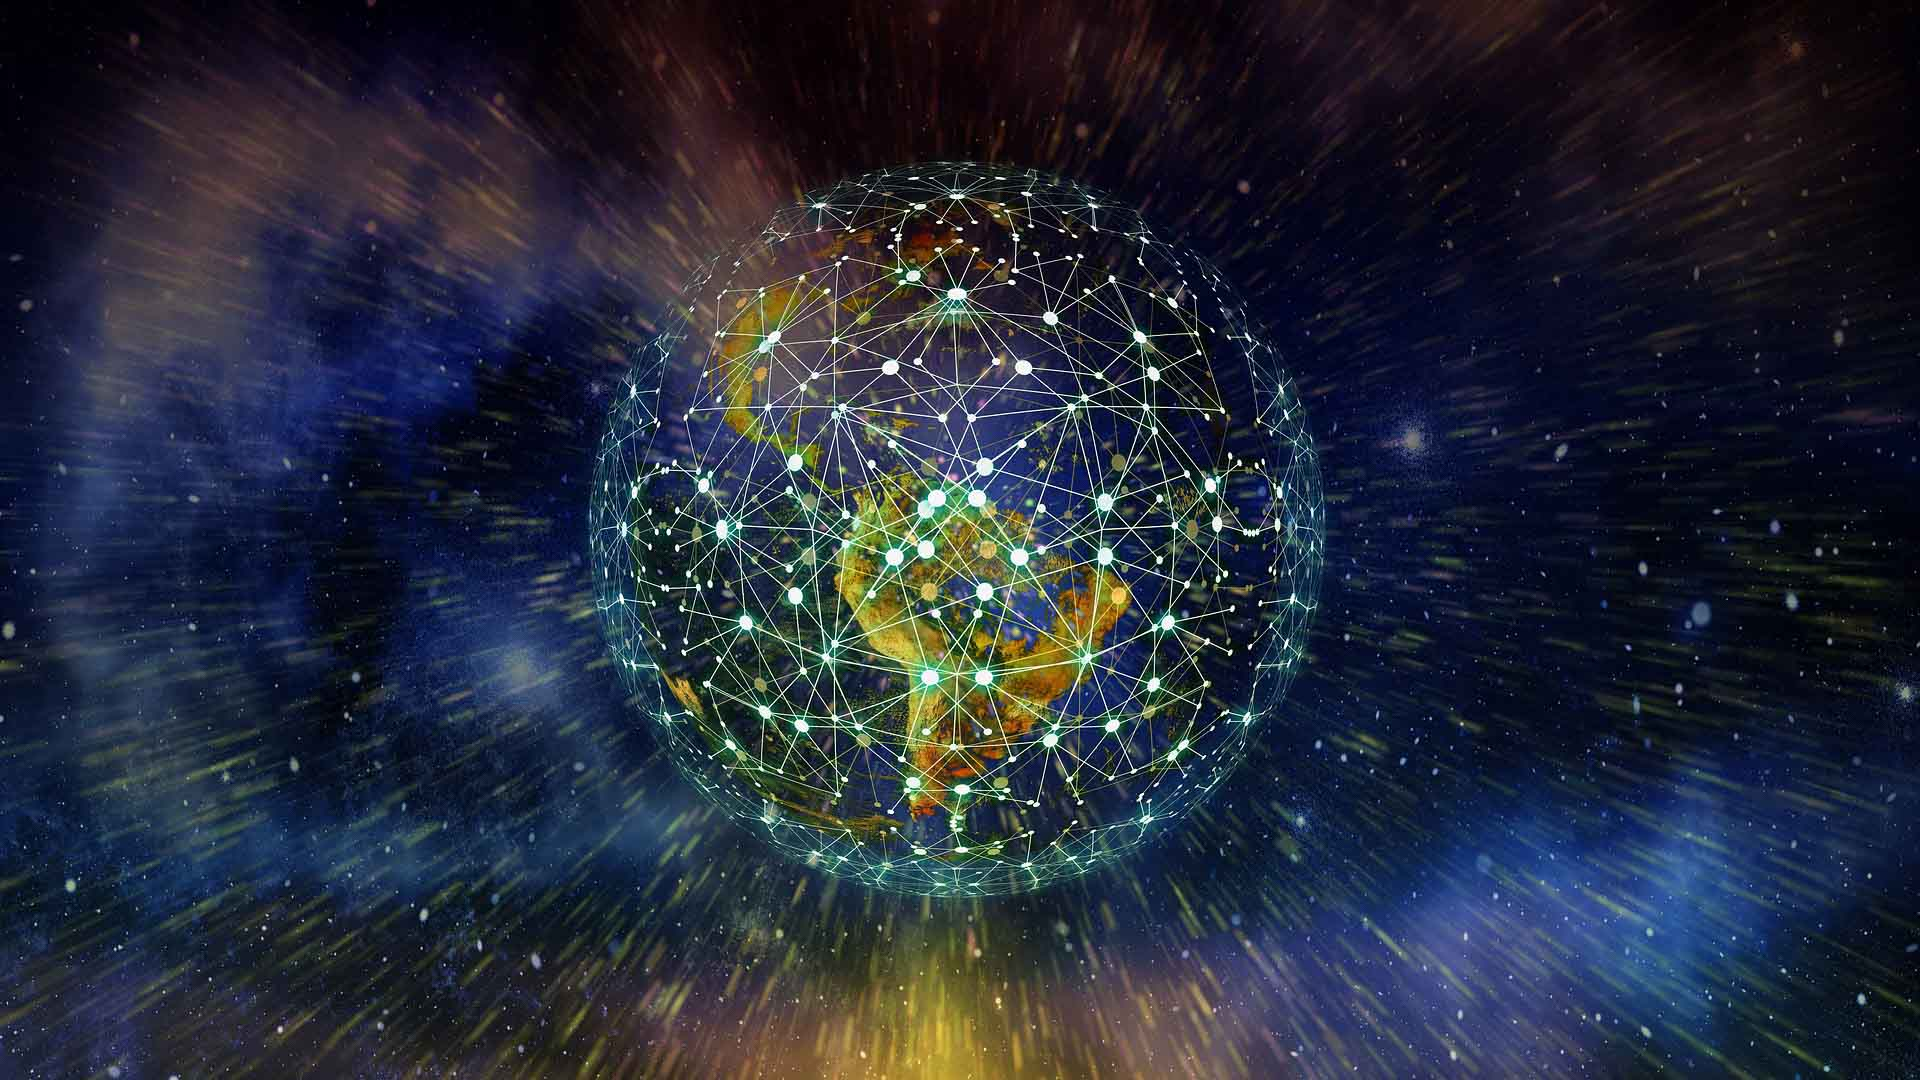 The earth is covered in network nodes as it undergoes a digital transformation